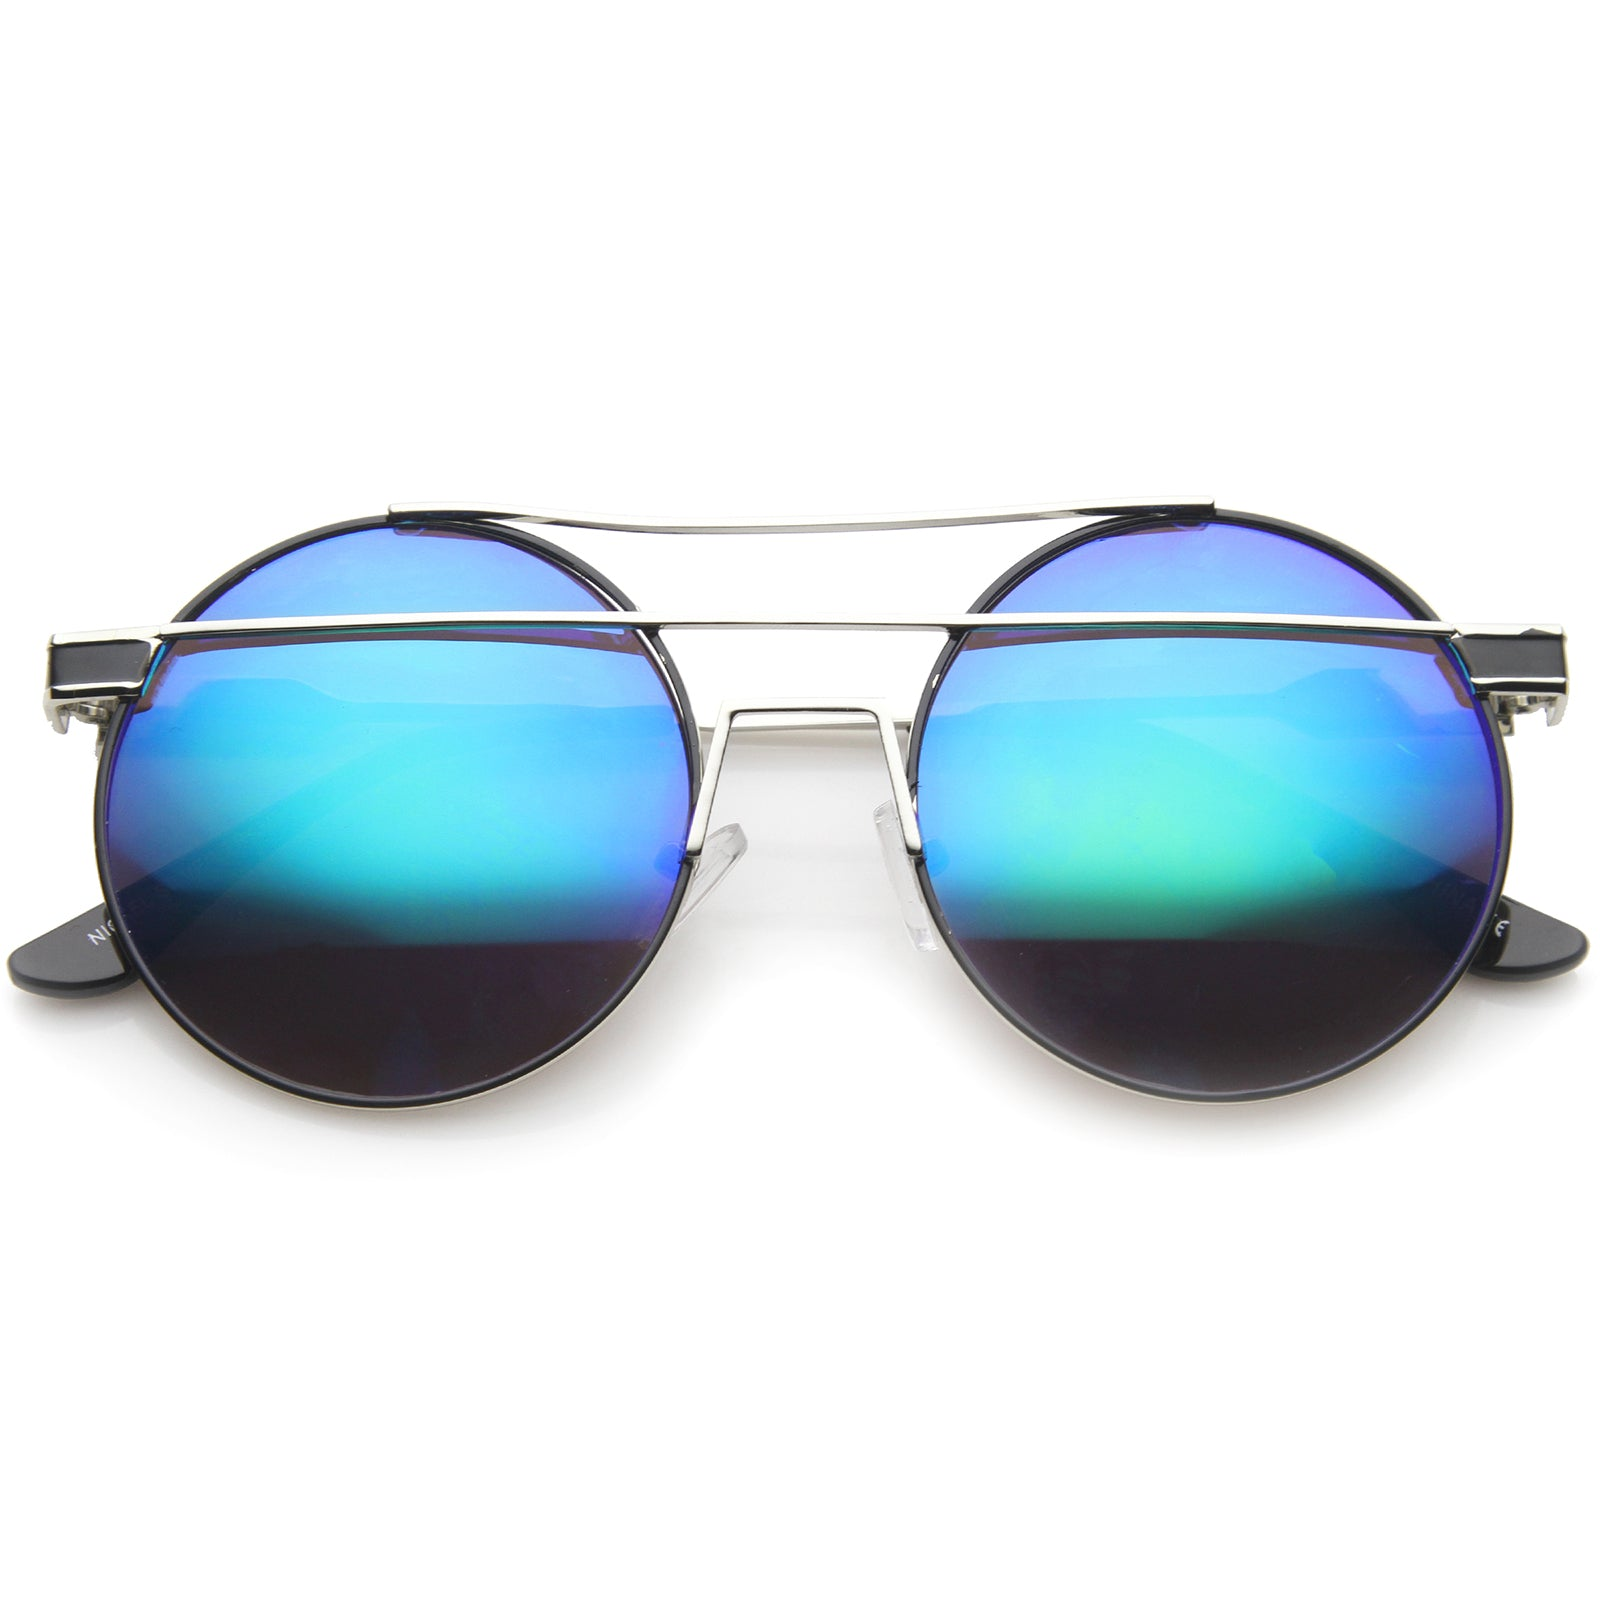 Modern Metal Frame Double Bridge Colored Mirror Lens Round Sunglasses 59mm - sunglass.la - 13